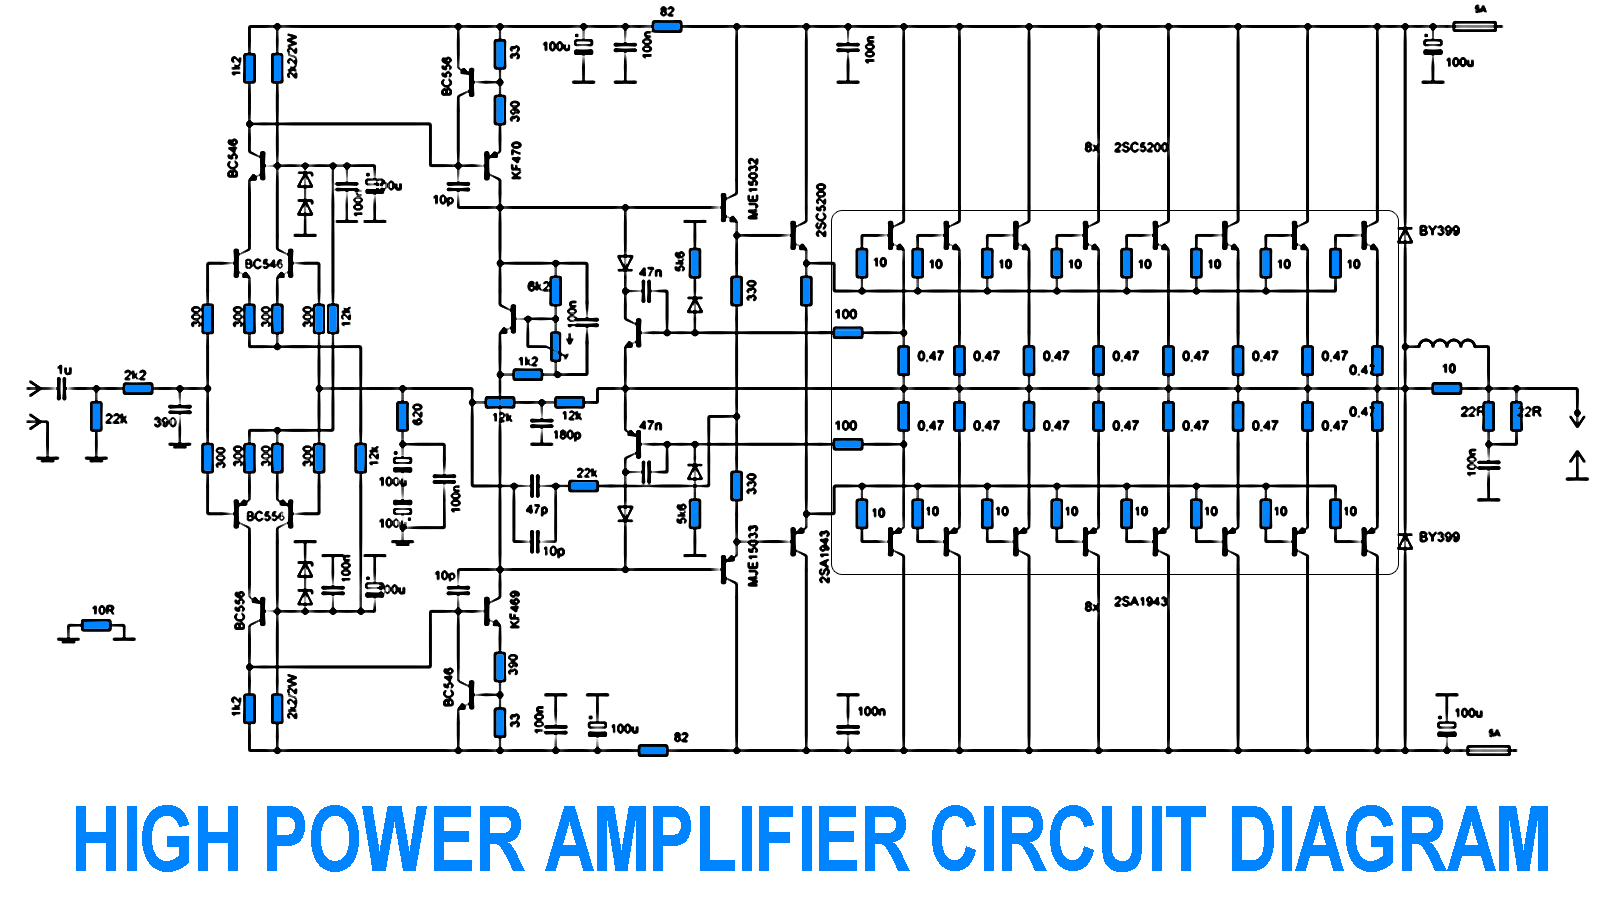 D Rudiant Pioneer Power Amplifier Circuit Diagram The 700w With 2sc5200 2sa1943